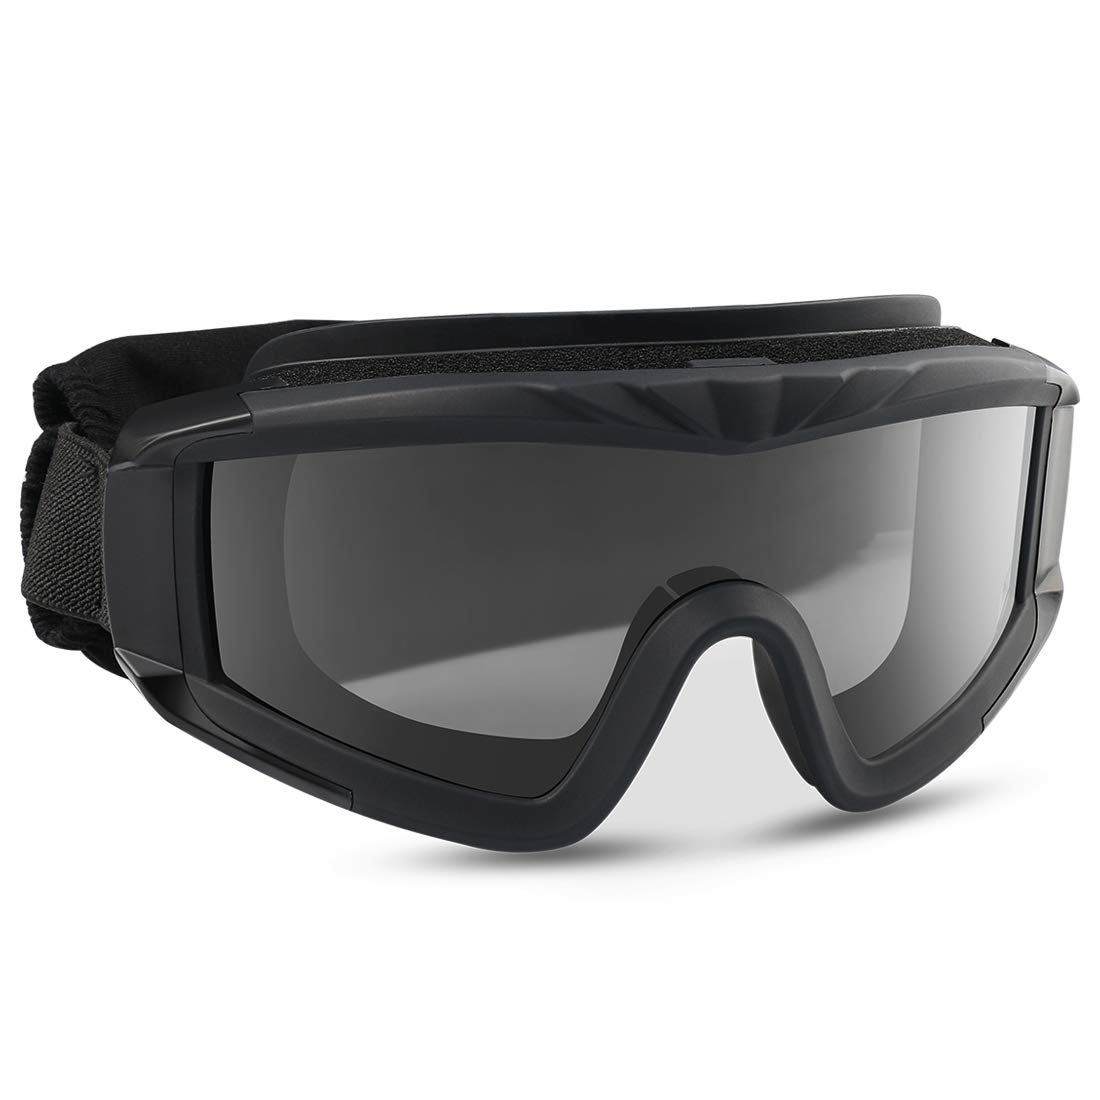 XAegis Airsoft Goggles, Tactical Safety Goggles Anti Fog Military Eyewear with 3 Interchangable Lens for Paintball Riding Shooting Hunting Cycling - Black by XAegis